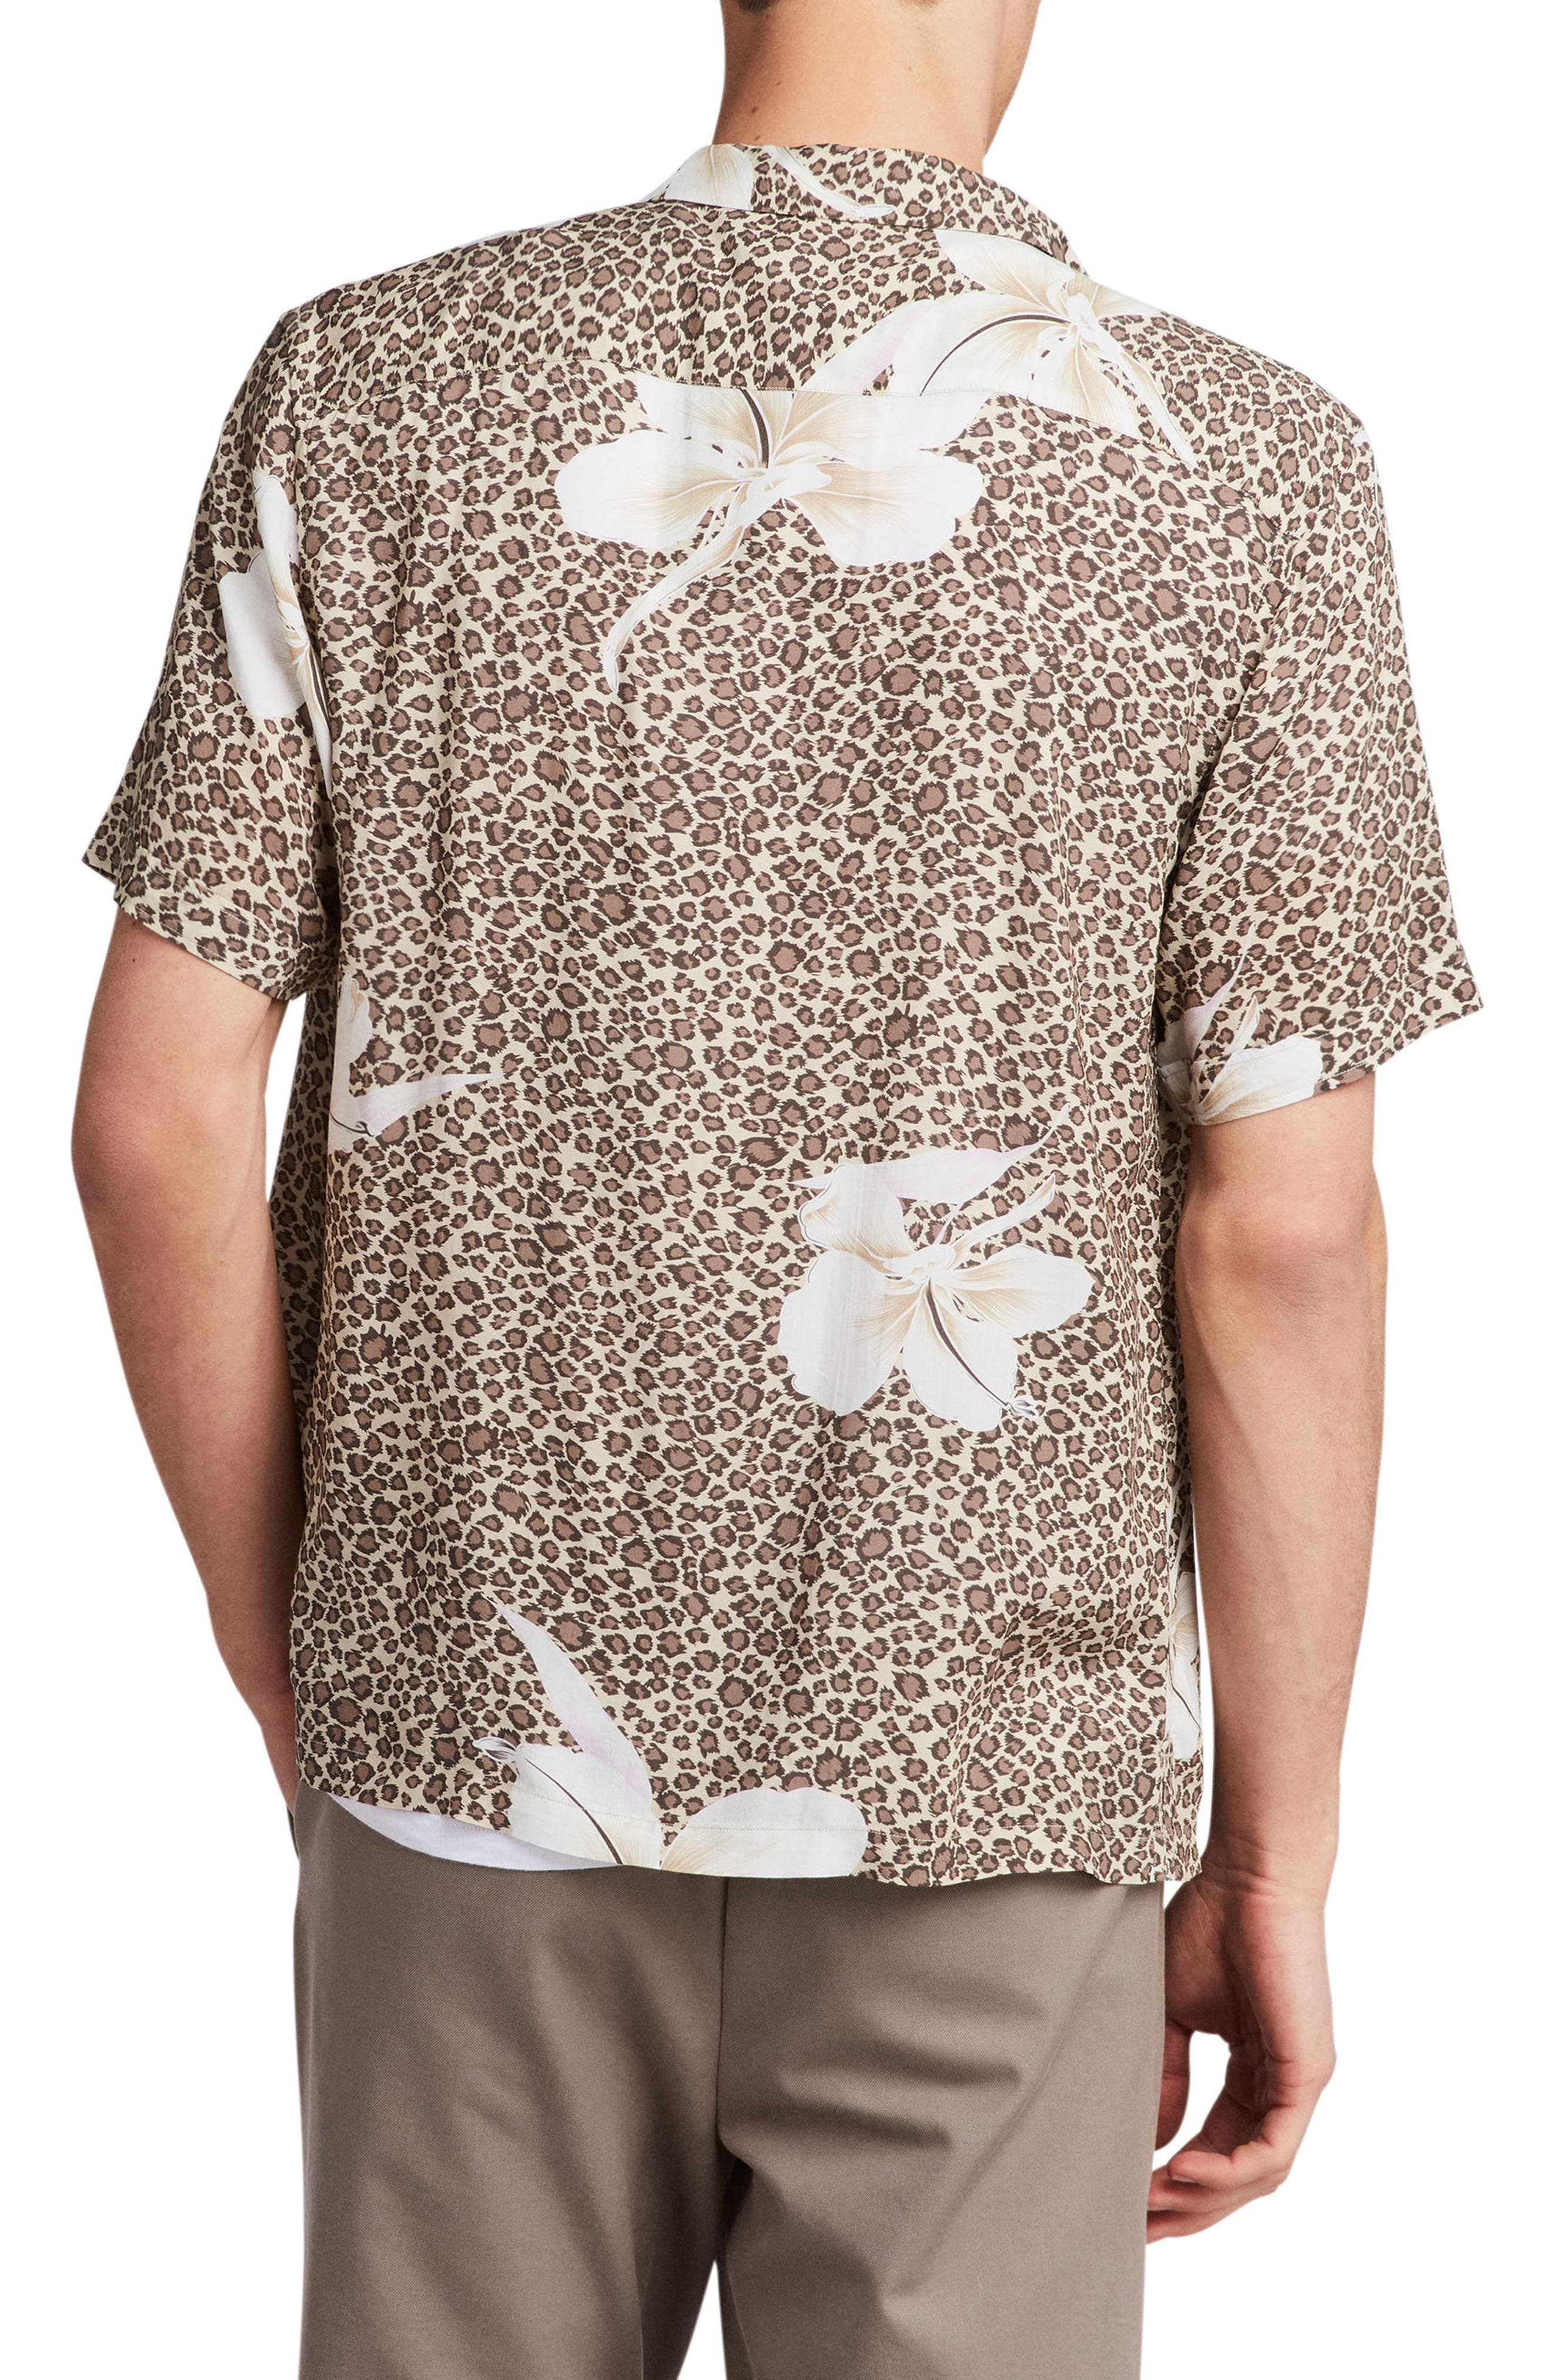 Kuhi Regular Fit Short Sleeve Sport Shirt,                             Alternate thumbnail 2, color,                             Sand